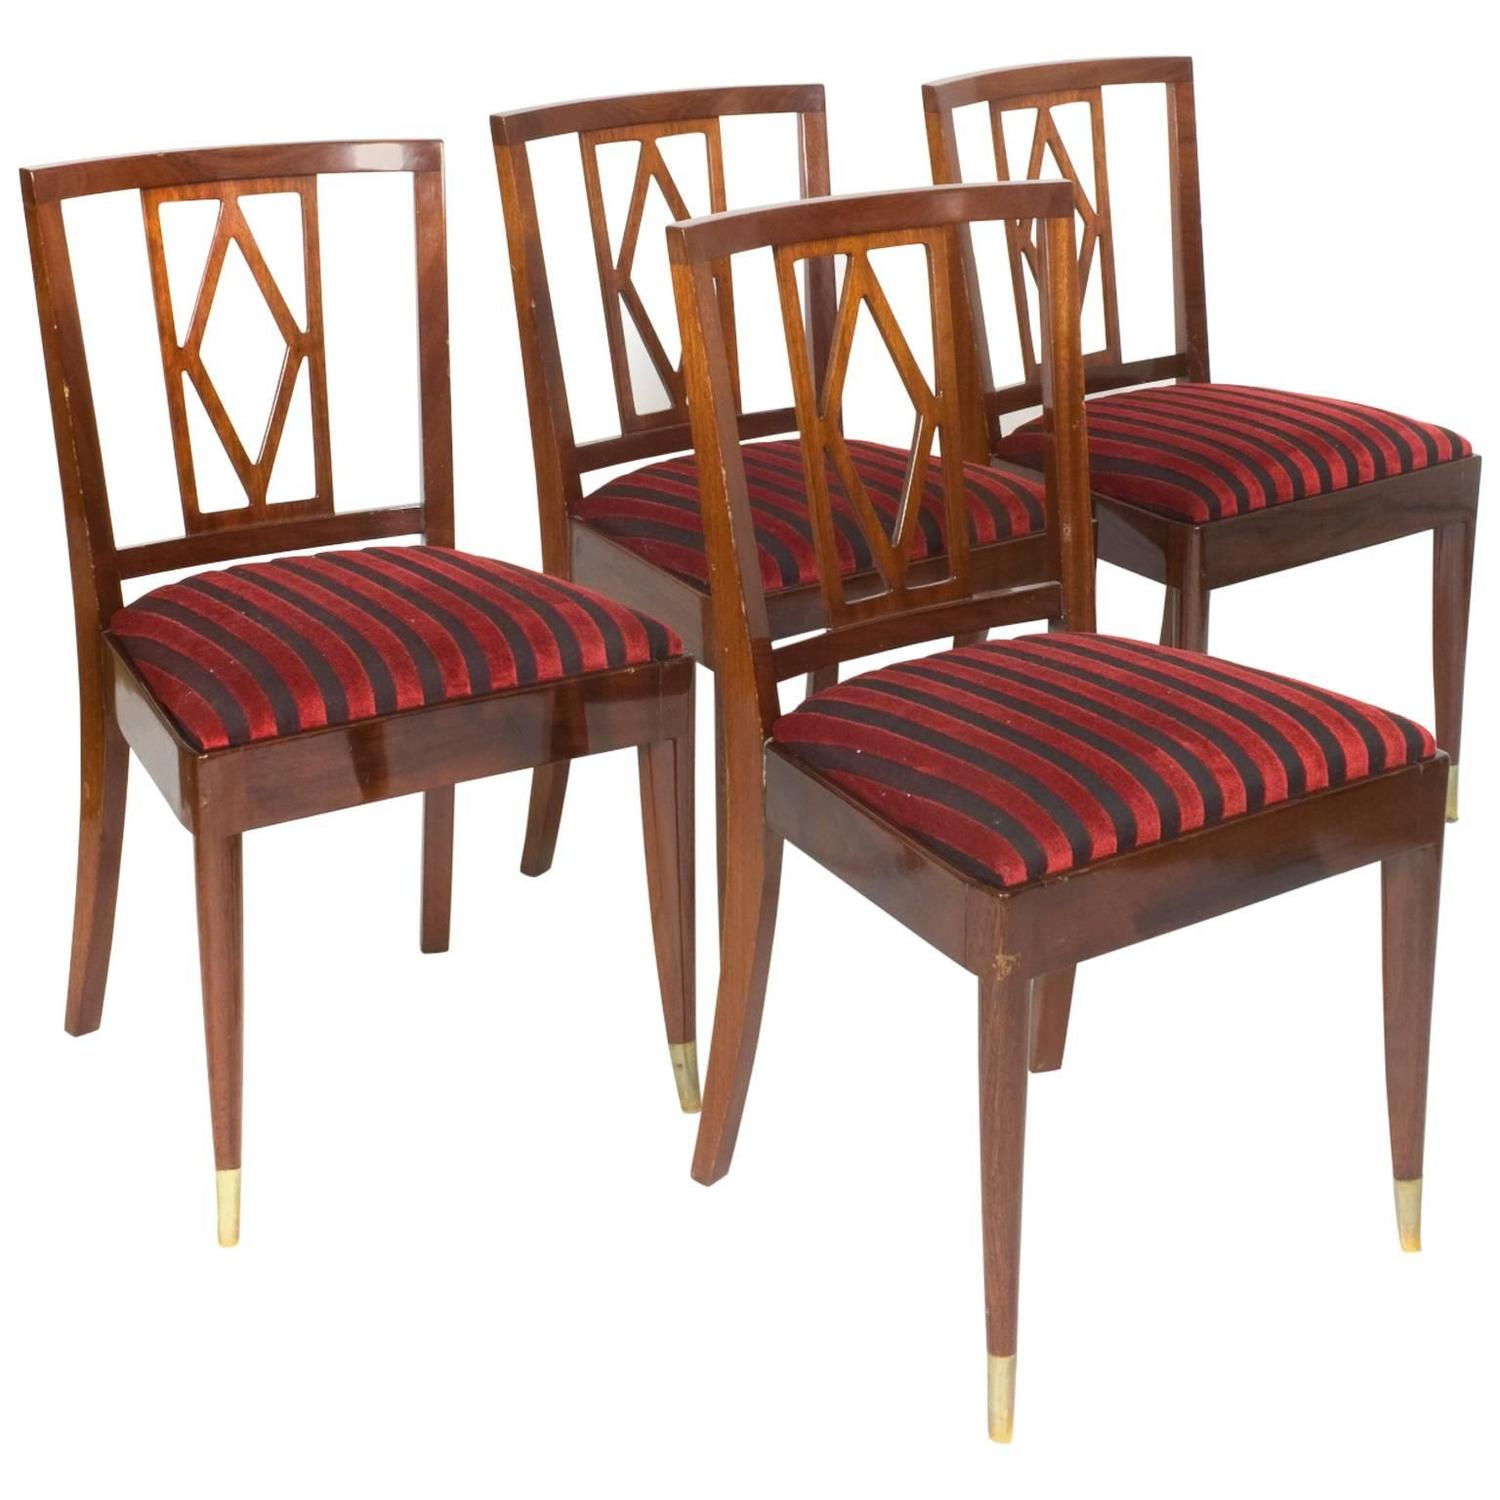 Four mahogany dining room chairs by josef de coene 1950s for Mahogany dining room furniture